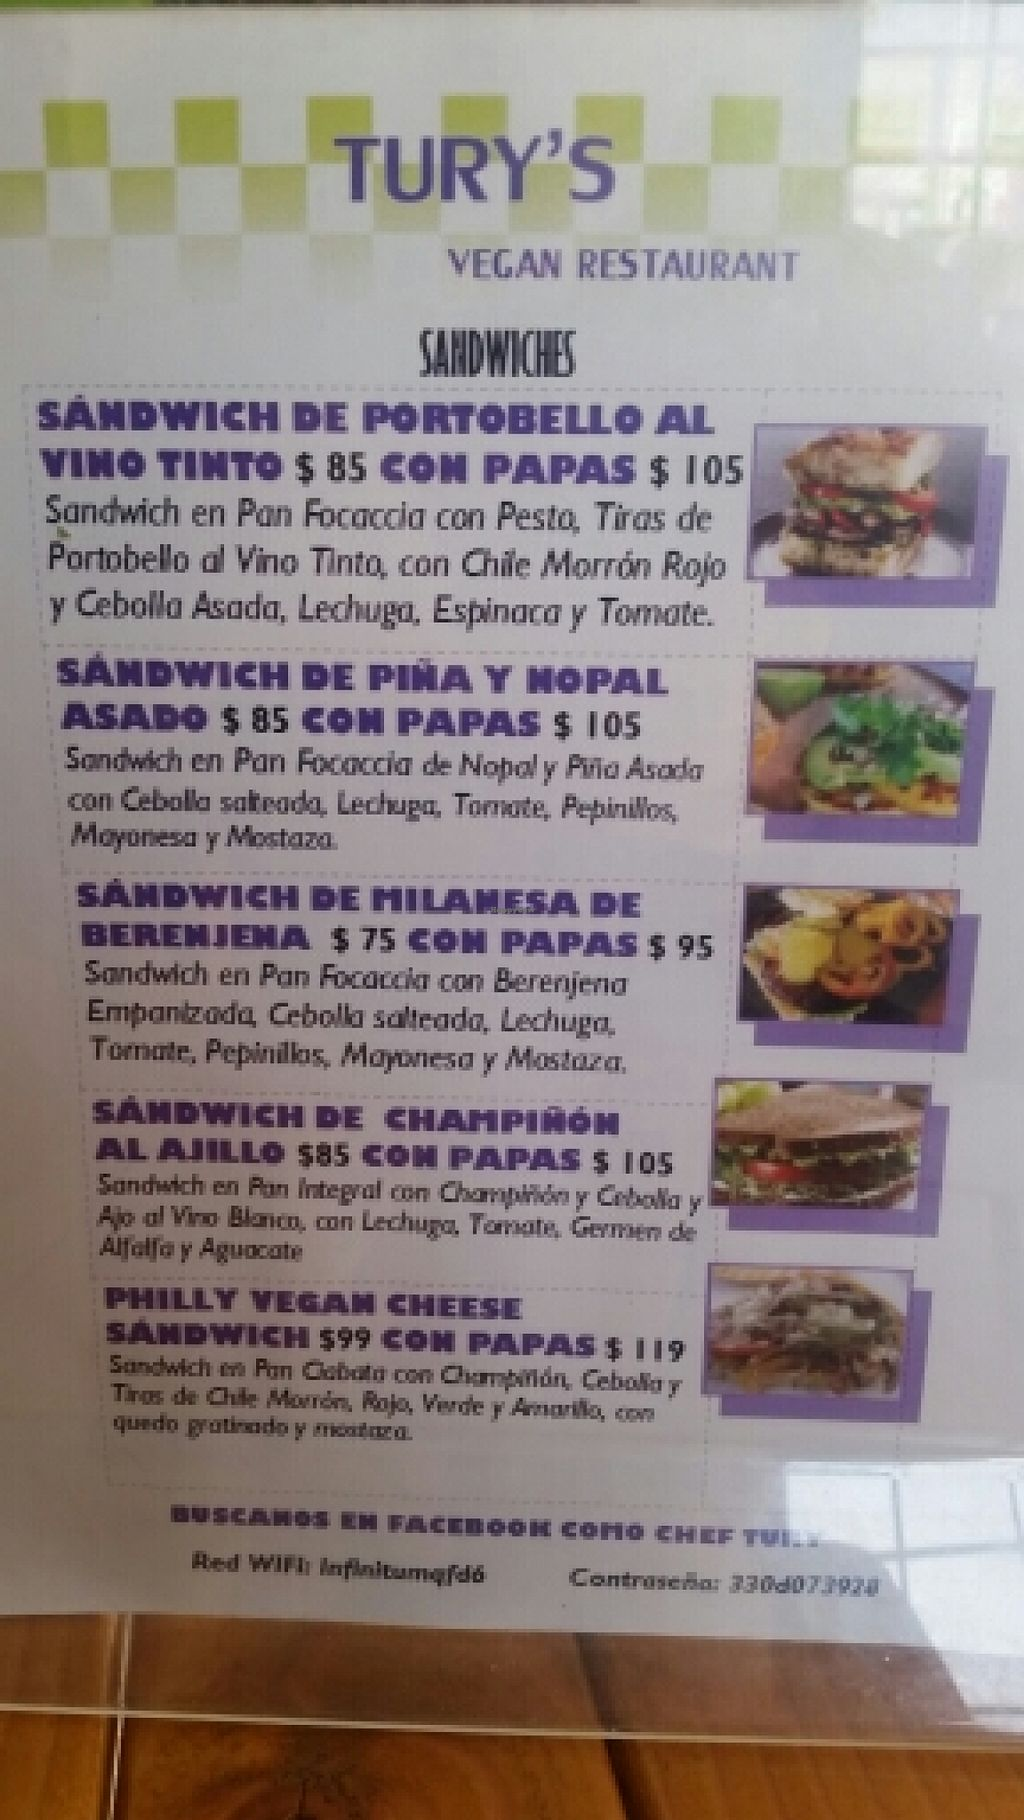 """Photo of Tury's  by <a href=""""/members/profile/kenvegan"""">kenvegan</a> <br/>menu <br/> December 7, 2015  - <a href='/contact/abuse/image/66290/127530'>Report</a>"""